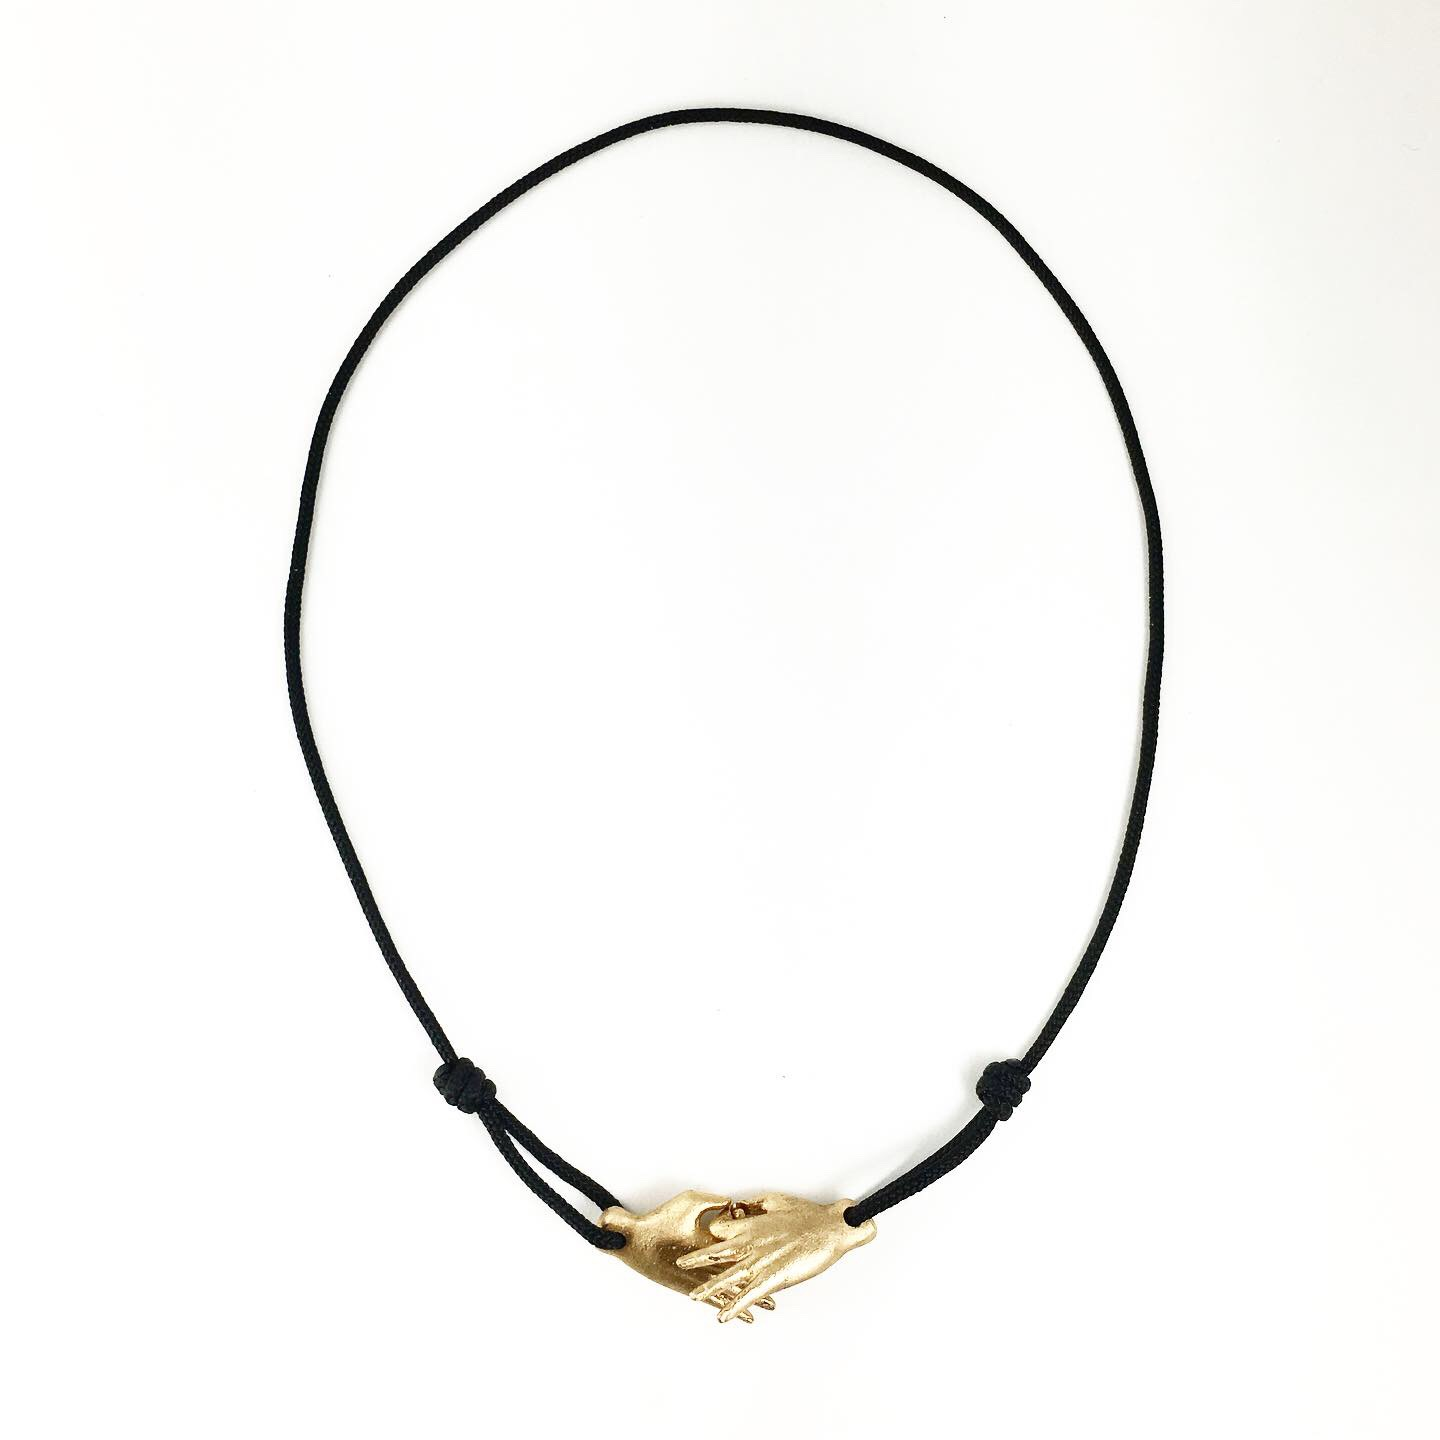 Hand Clasp Necklace  bronze on black cord  $83